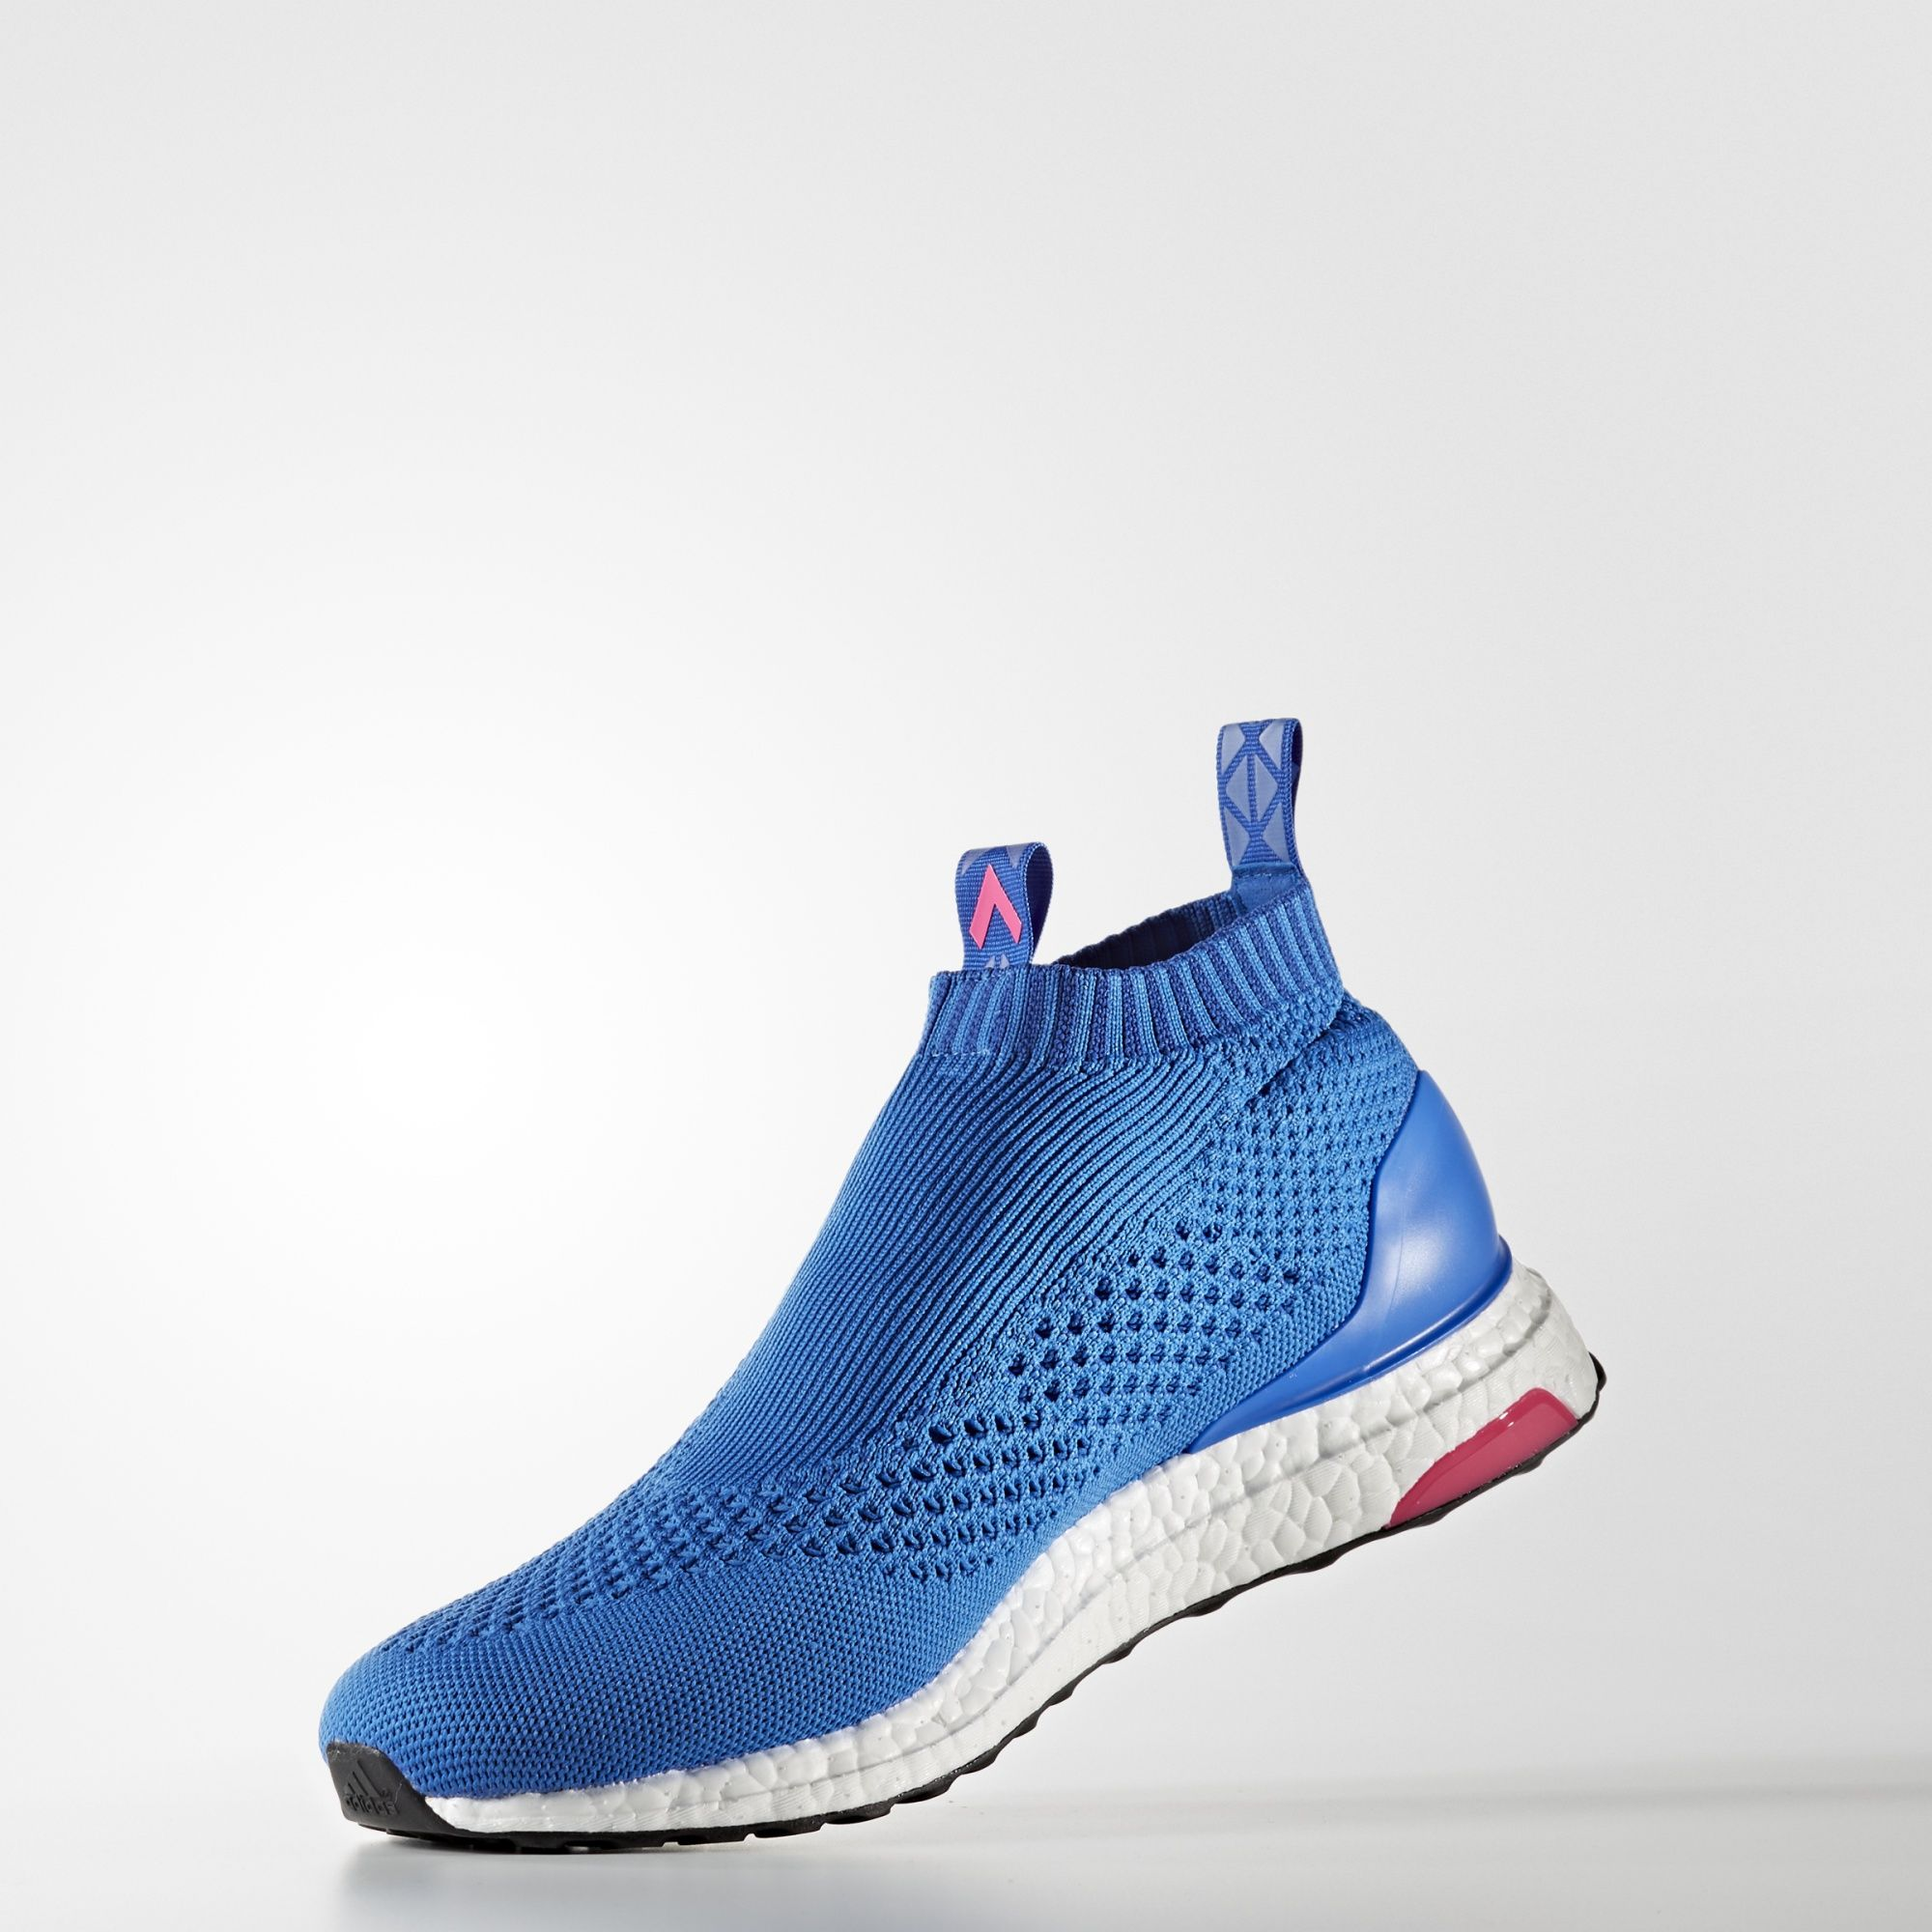 adidas ACE 16+ Purecontrol Ultra Boost – Blue | #SNKR Releases